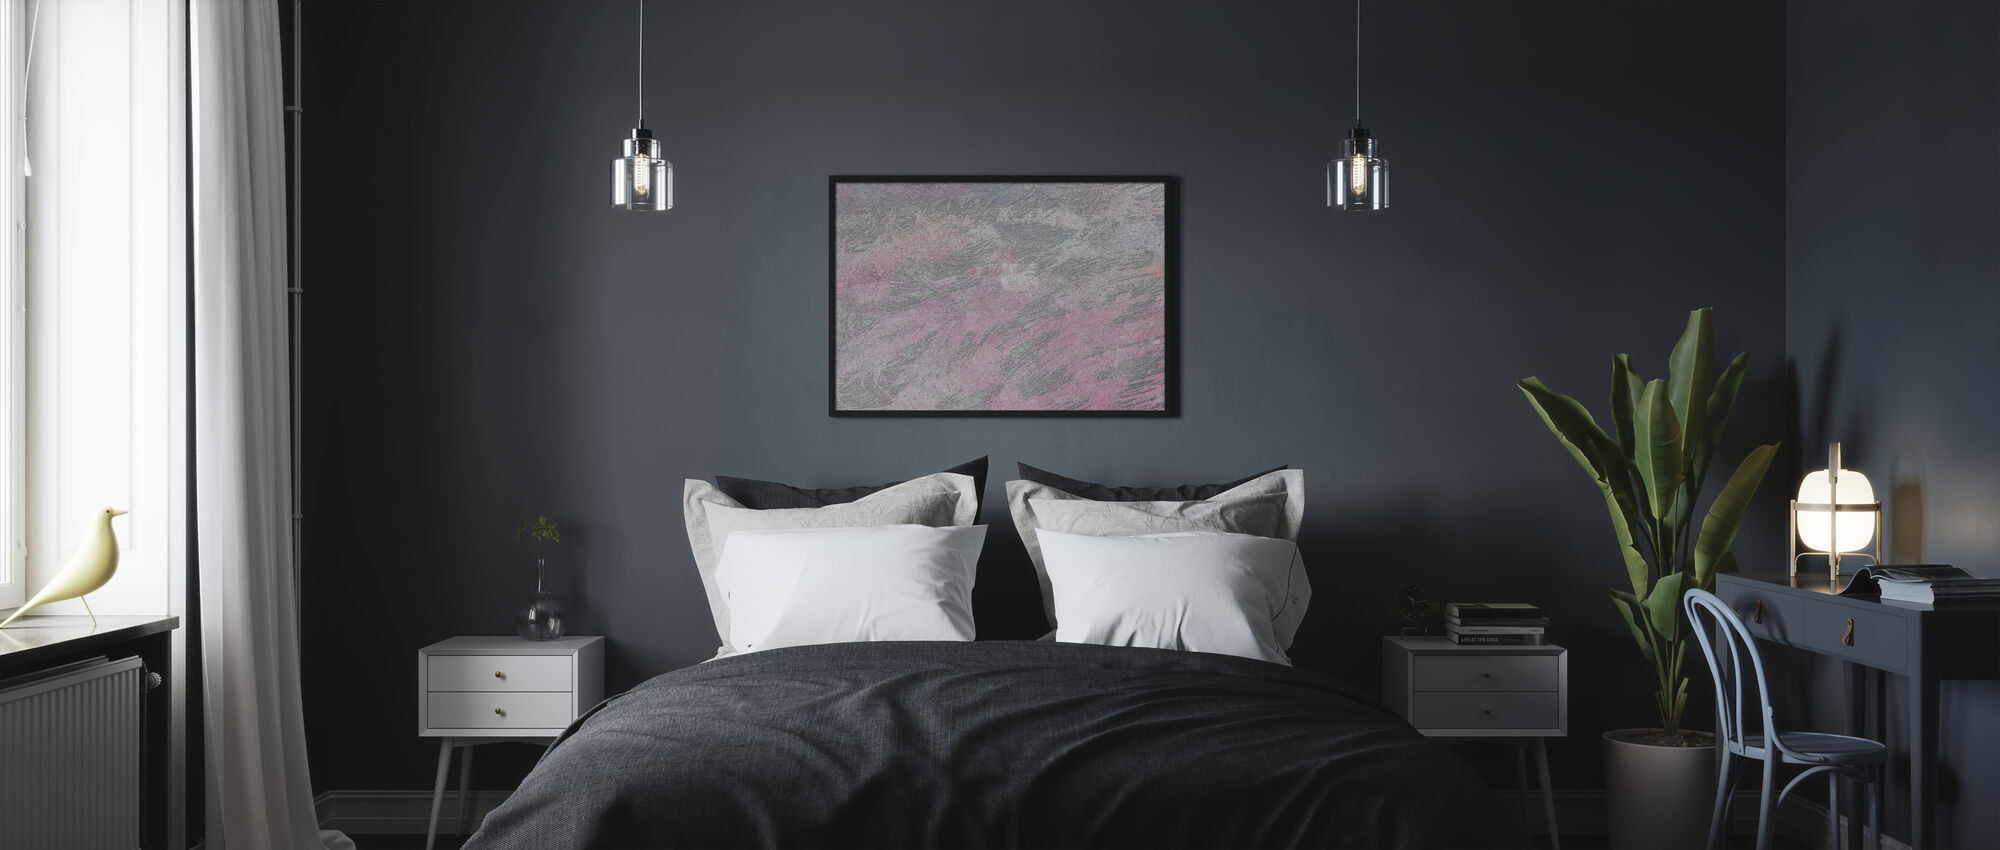 Pinkys Dream - Poster - Bedroom